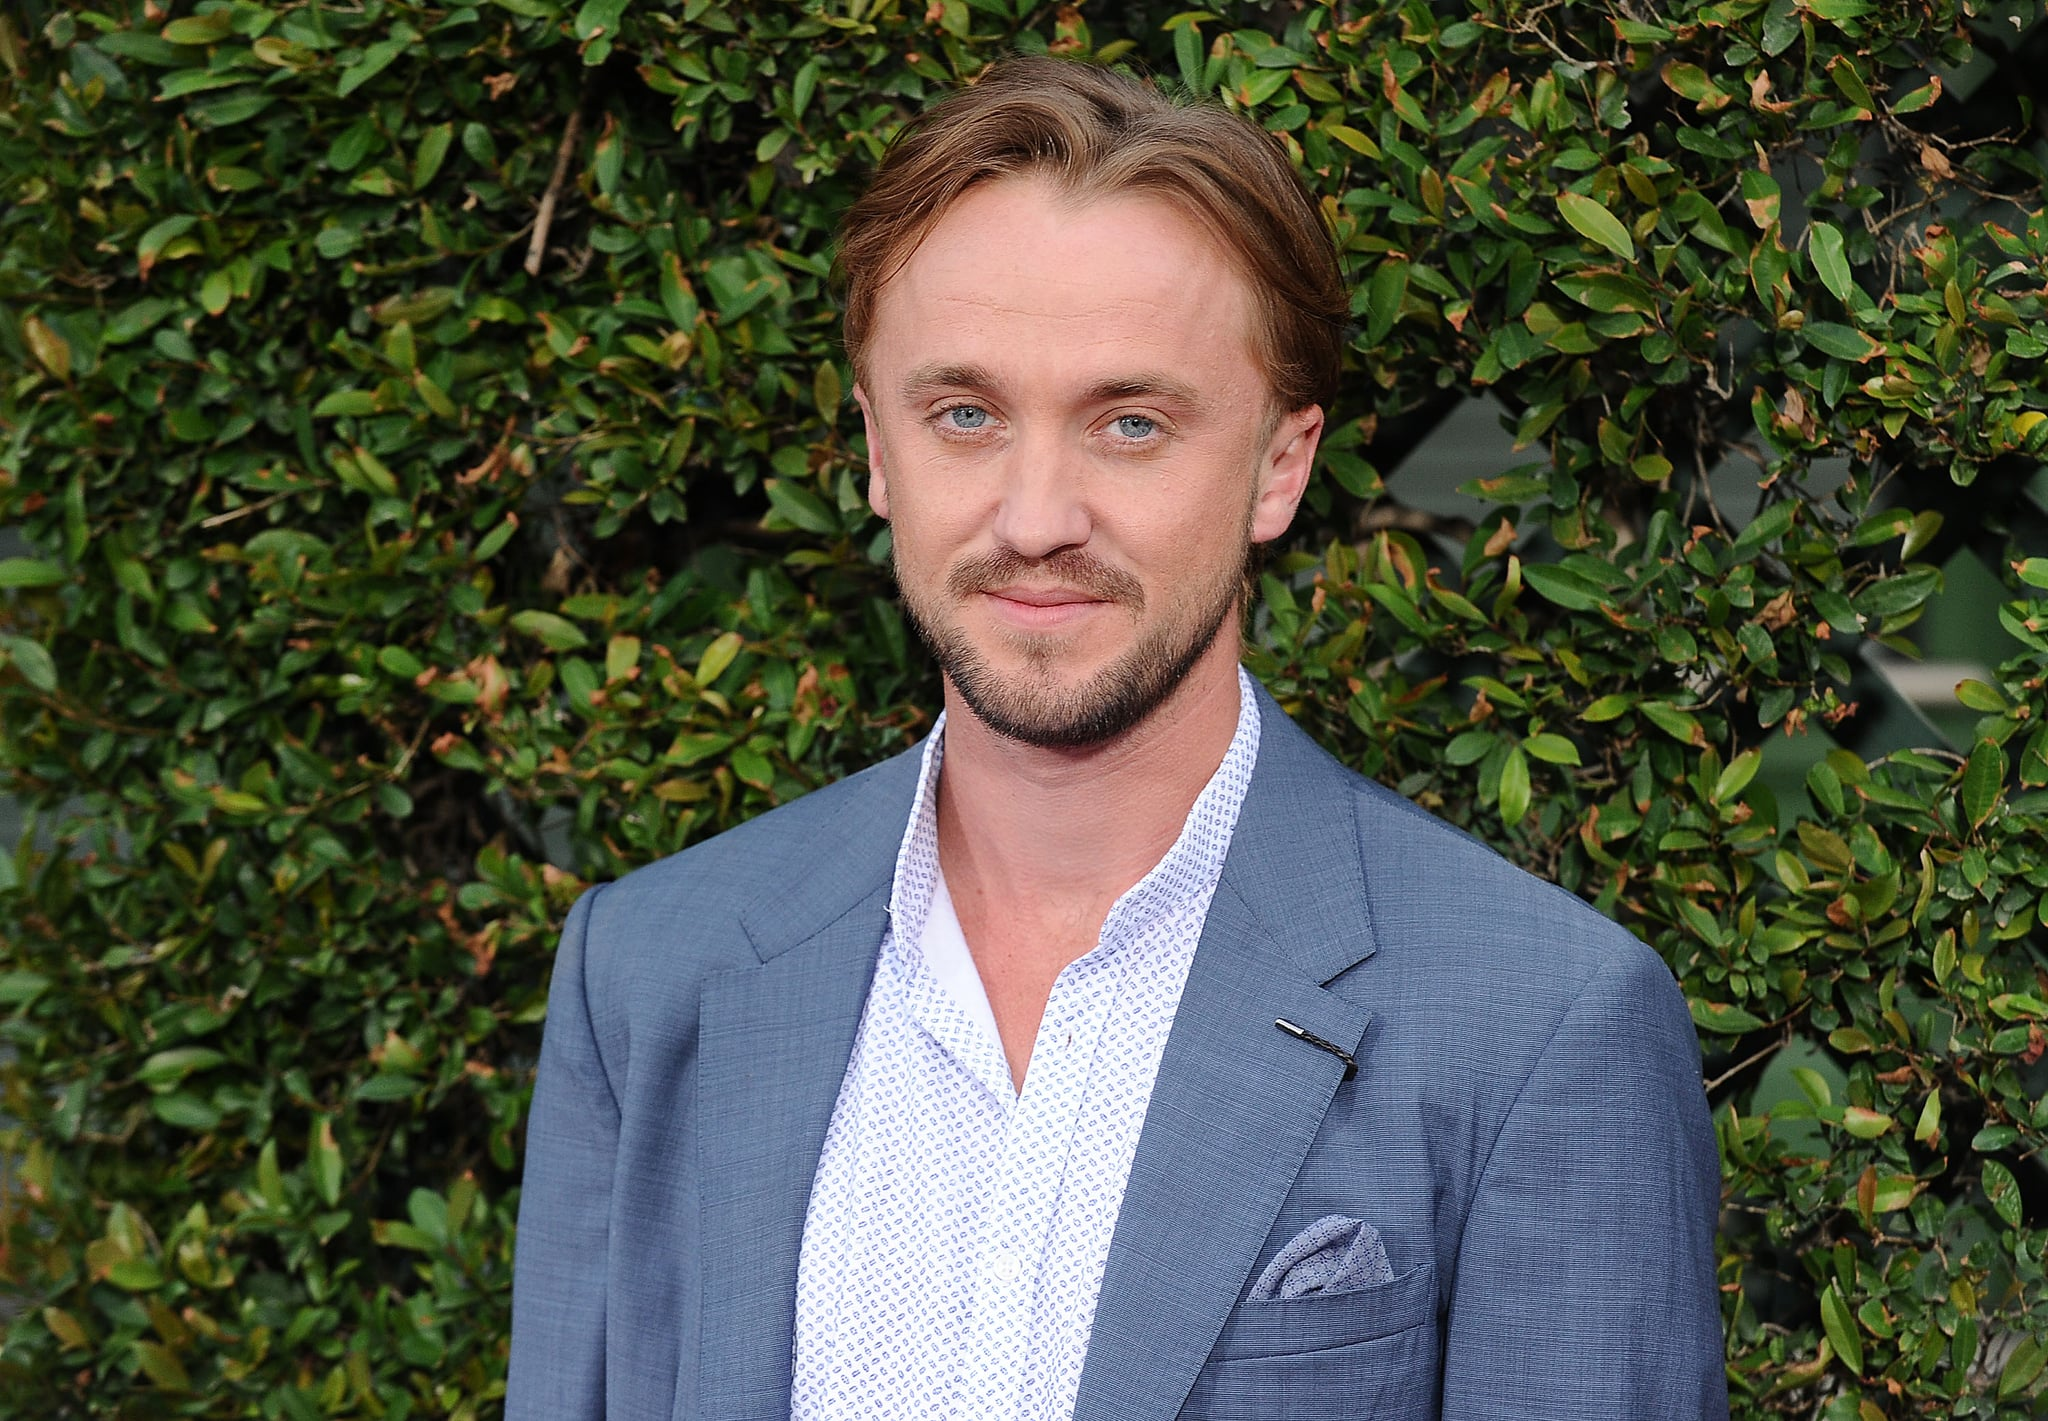 UNIVERSAL CITY, CALIFORNIA - APRIL 05:  Actor Tom Felton attends the opening of